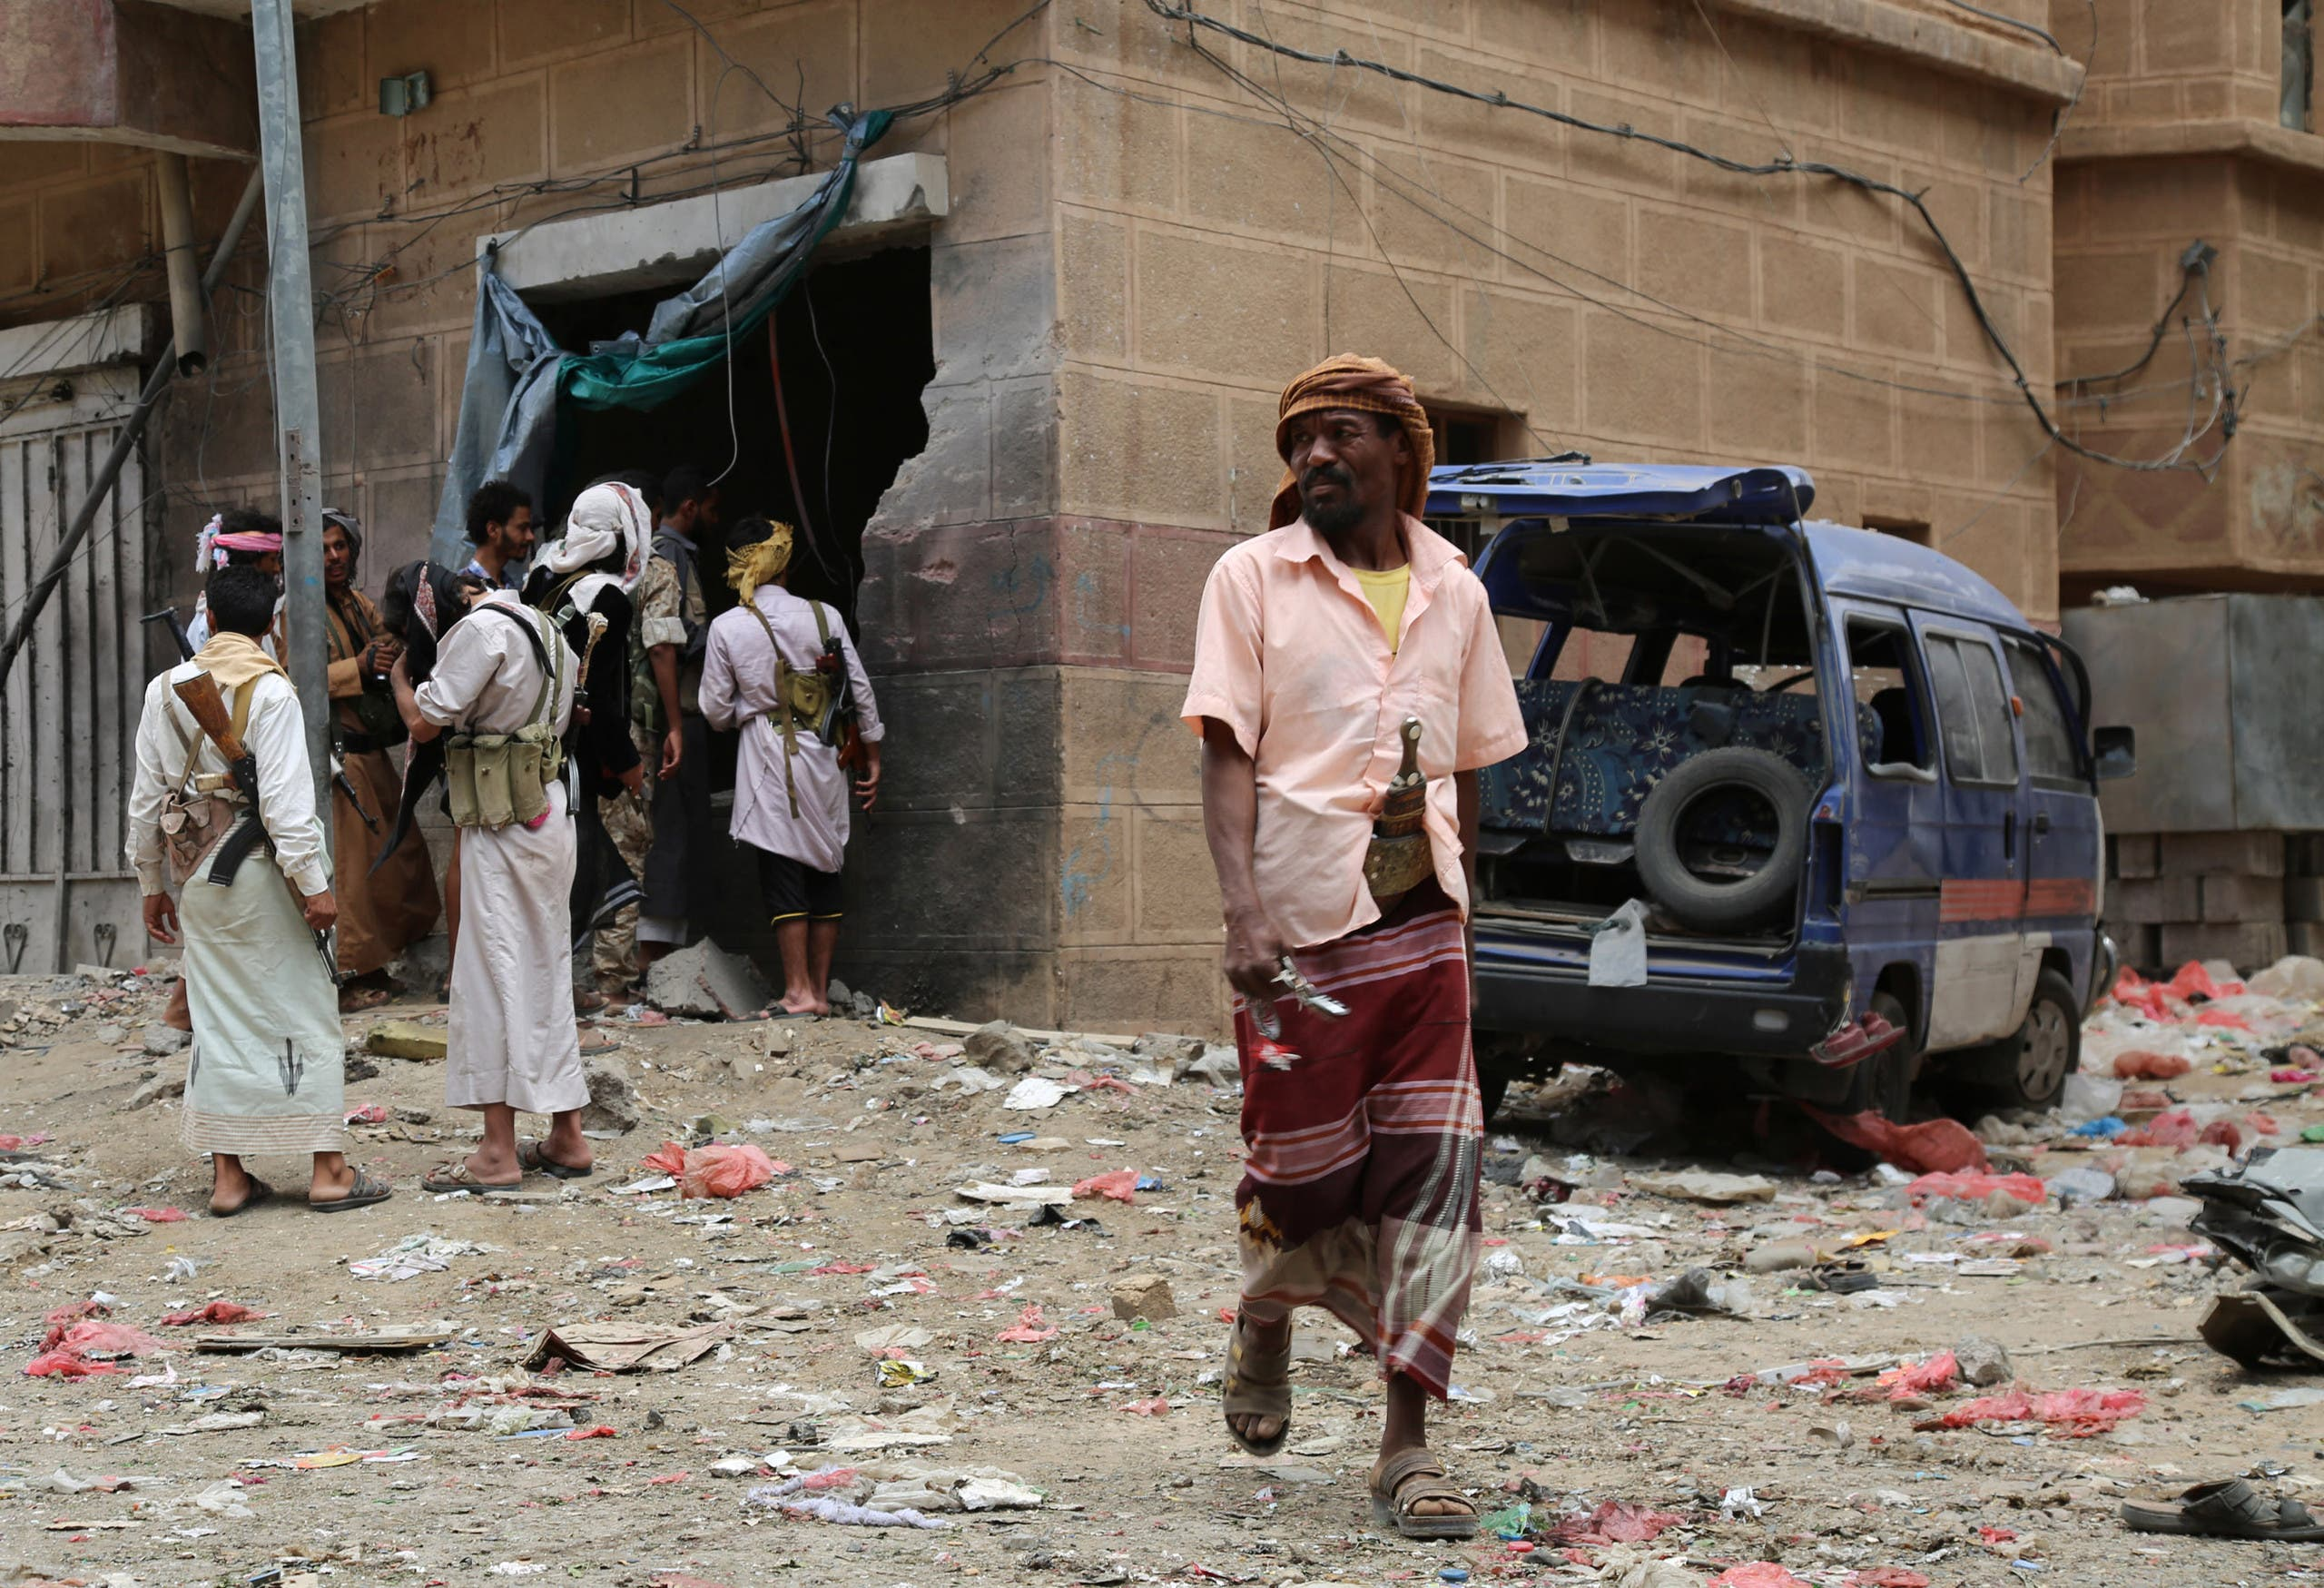 Yemenis look at the damage after Iran-backed militia fired Katyusha rockets at a busy market in Yemen's Marib province, east of the capital, Sanaa, on September 11, 2015. (Reuters)